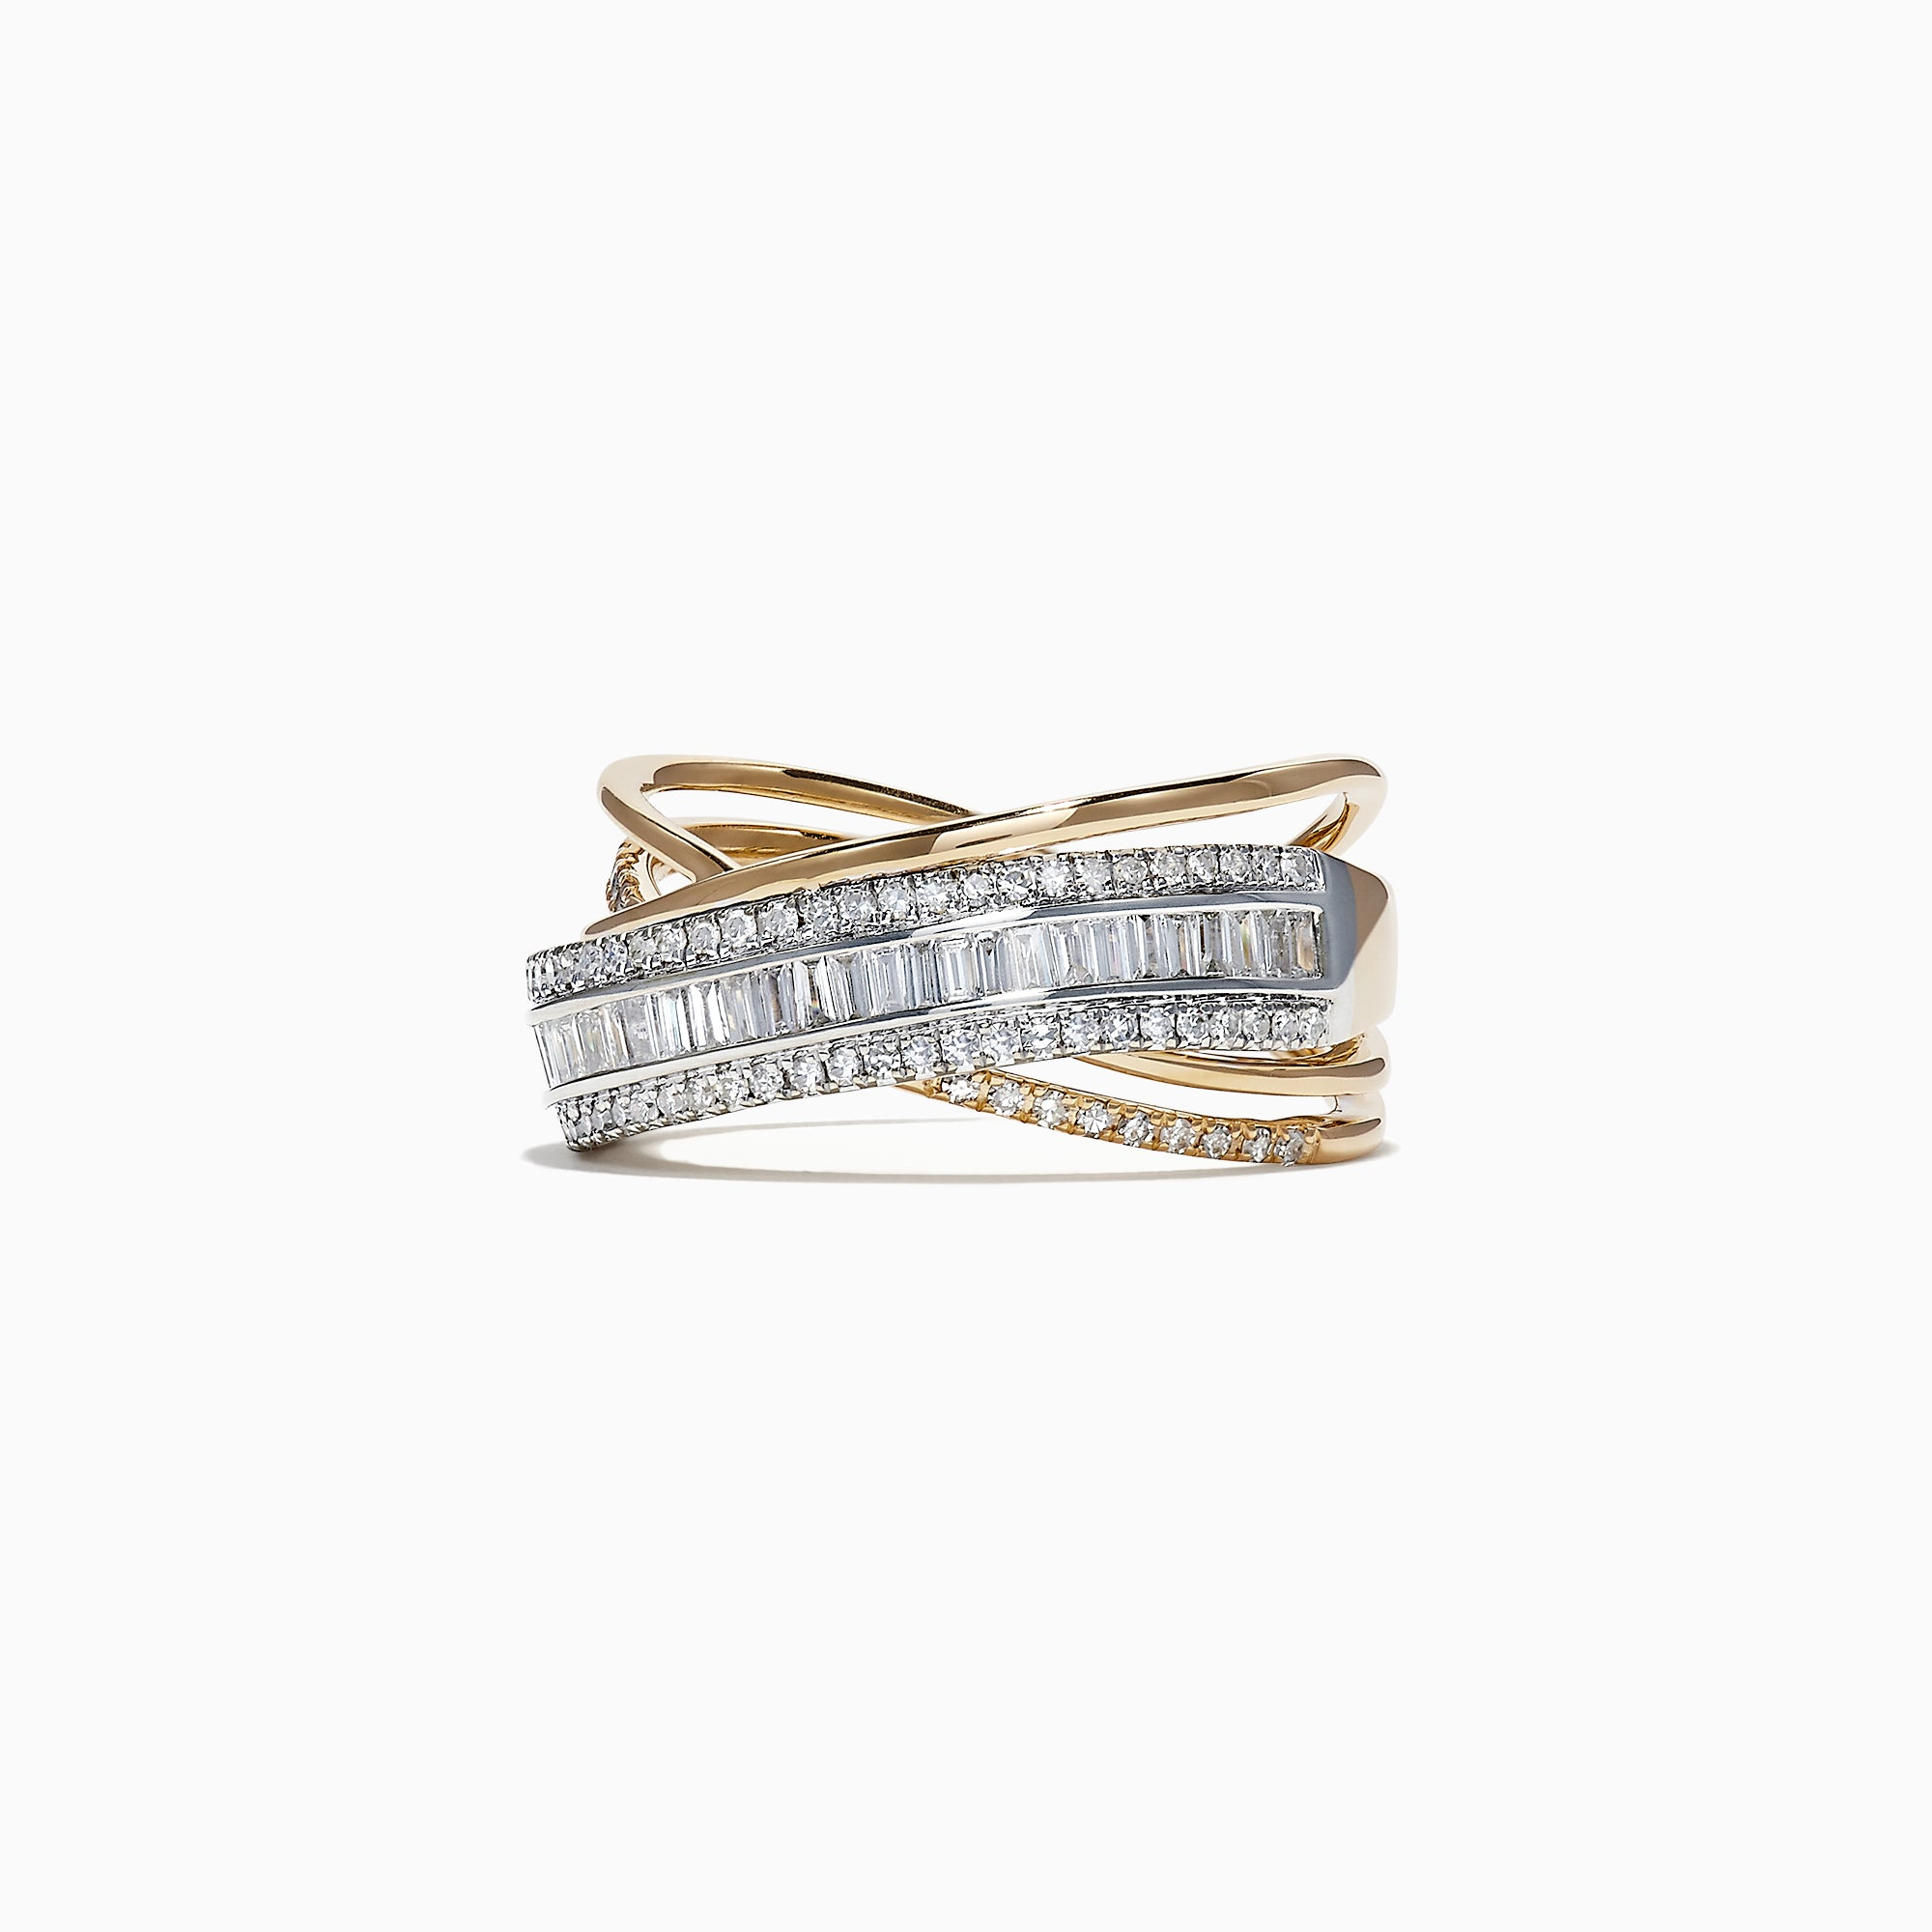 Effy Duo 14K 2 Tone Gold Diamond Crossover Ring, 0.77 TCW